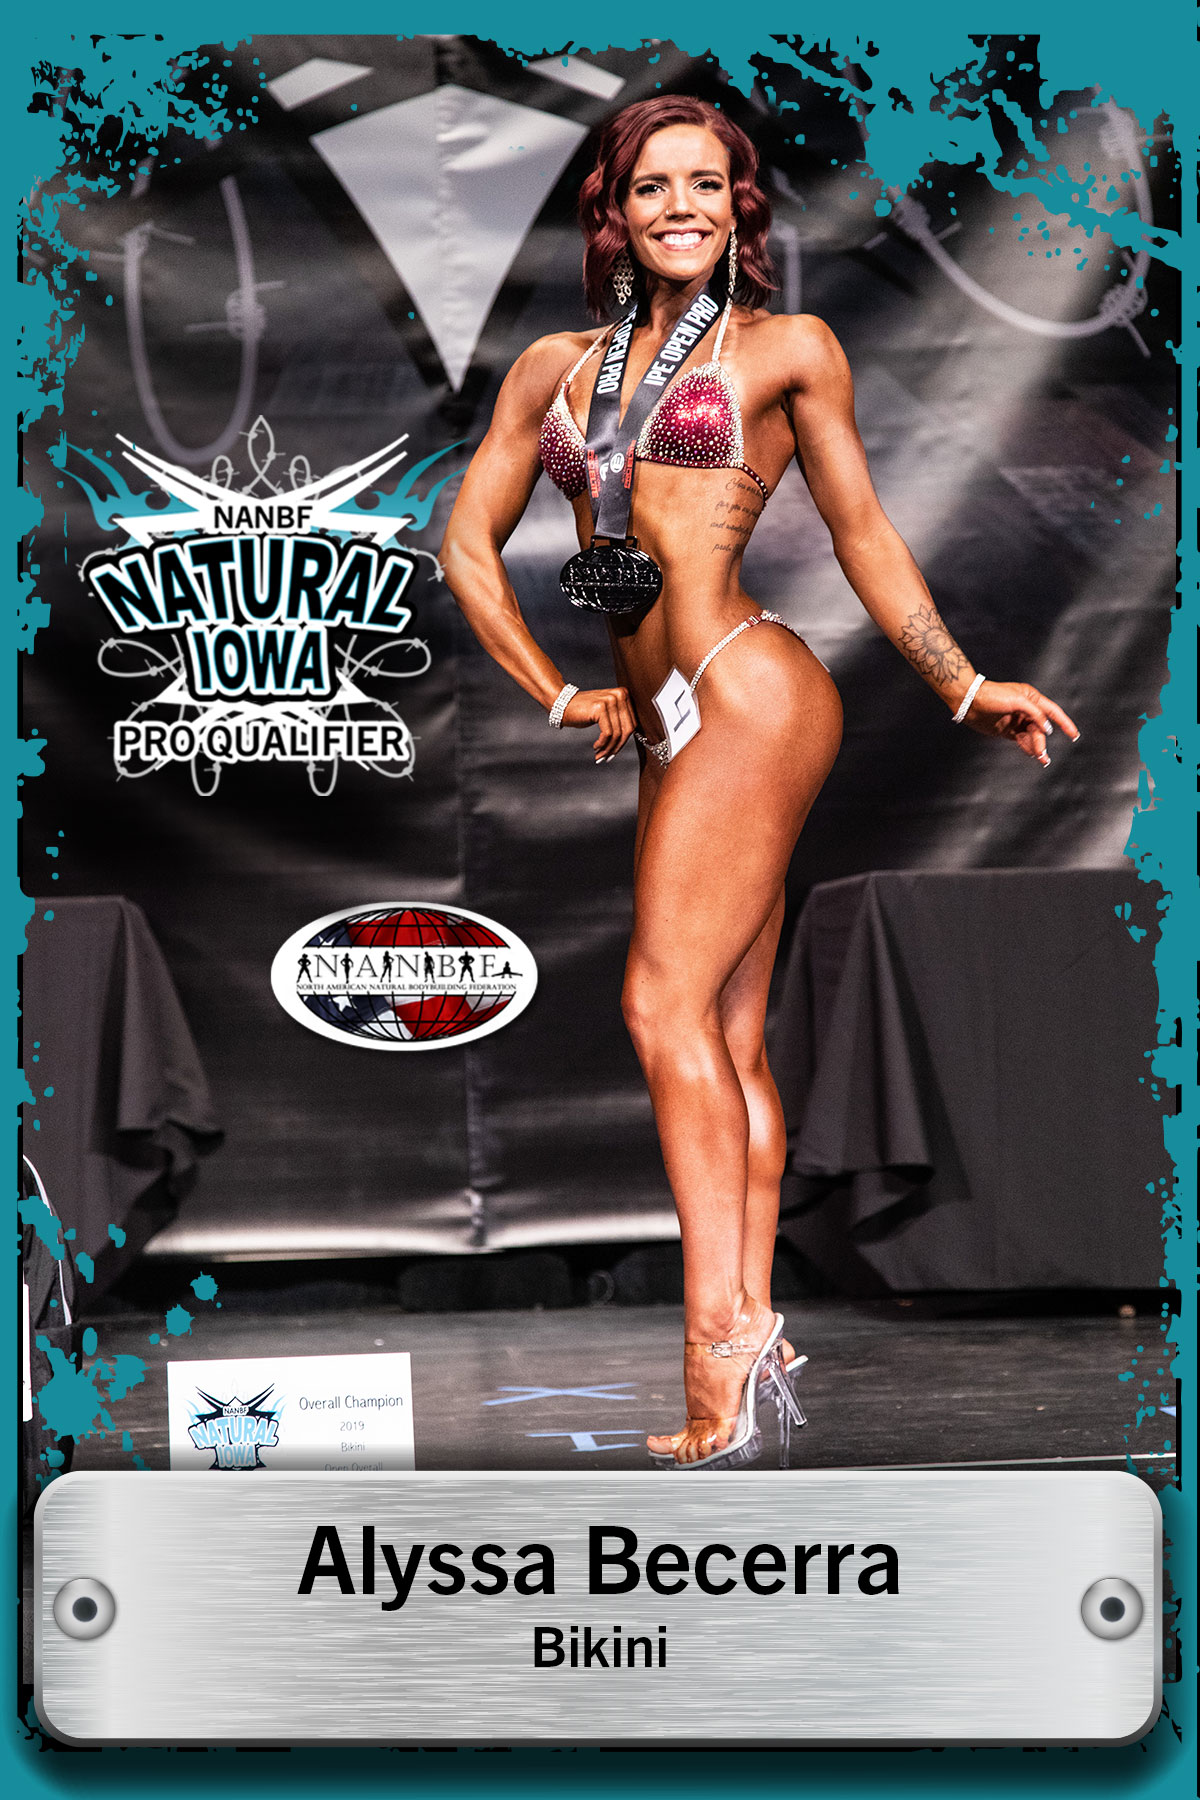 NATURAL IOWA COMPETITOR SPOTLIGHT: ALYSSA BECERRA